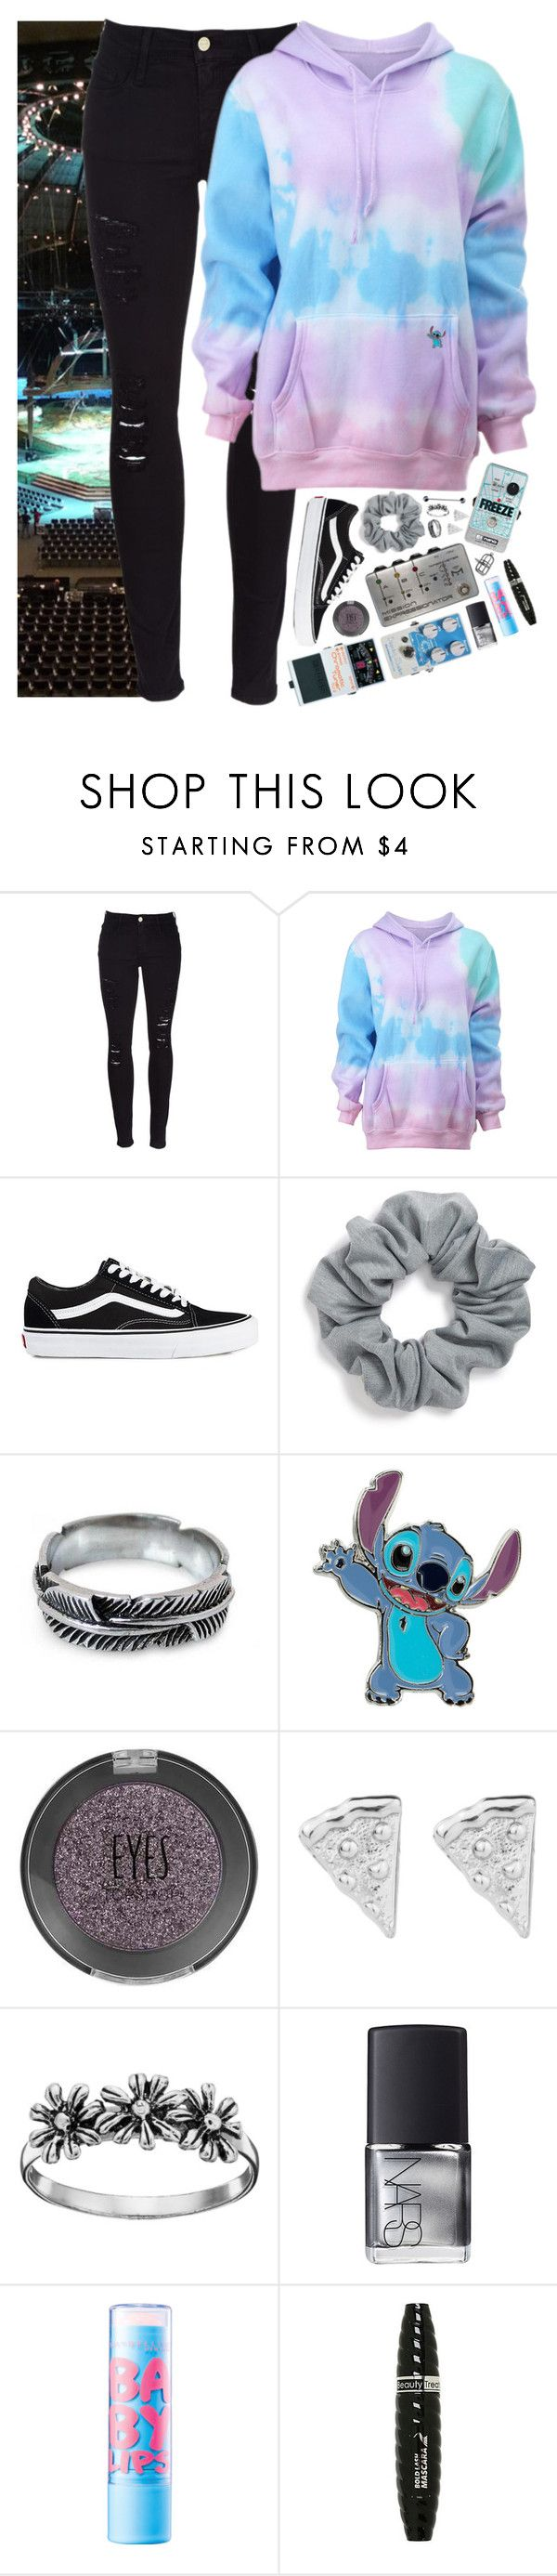 """""""Setting up in Frankfurt, Germany but whY DO YOU HAVE SO MANY PEDALS JOSH?!? 